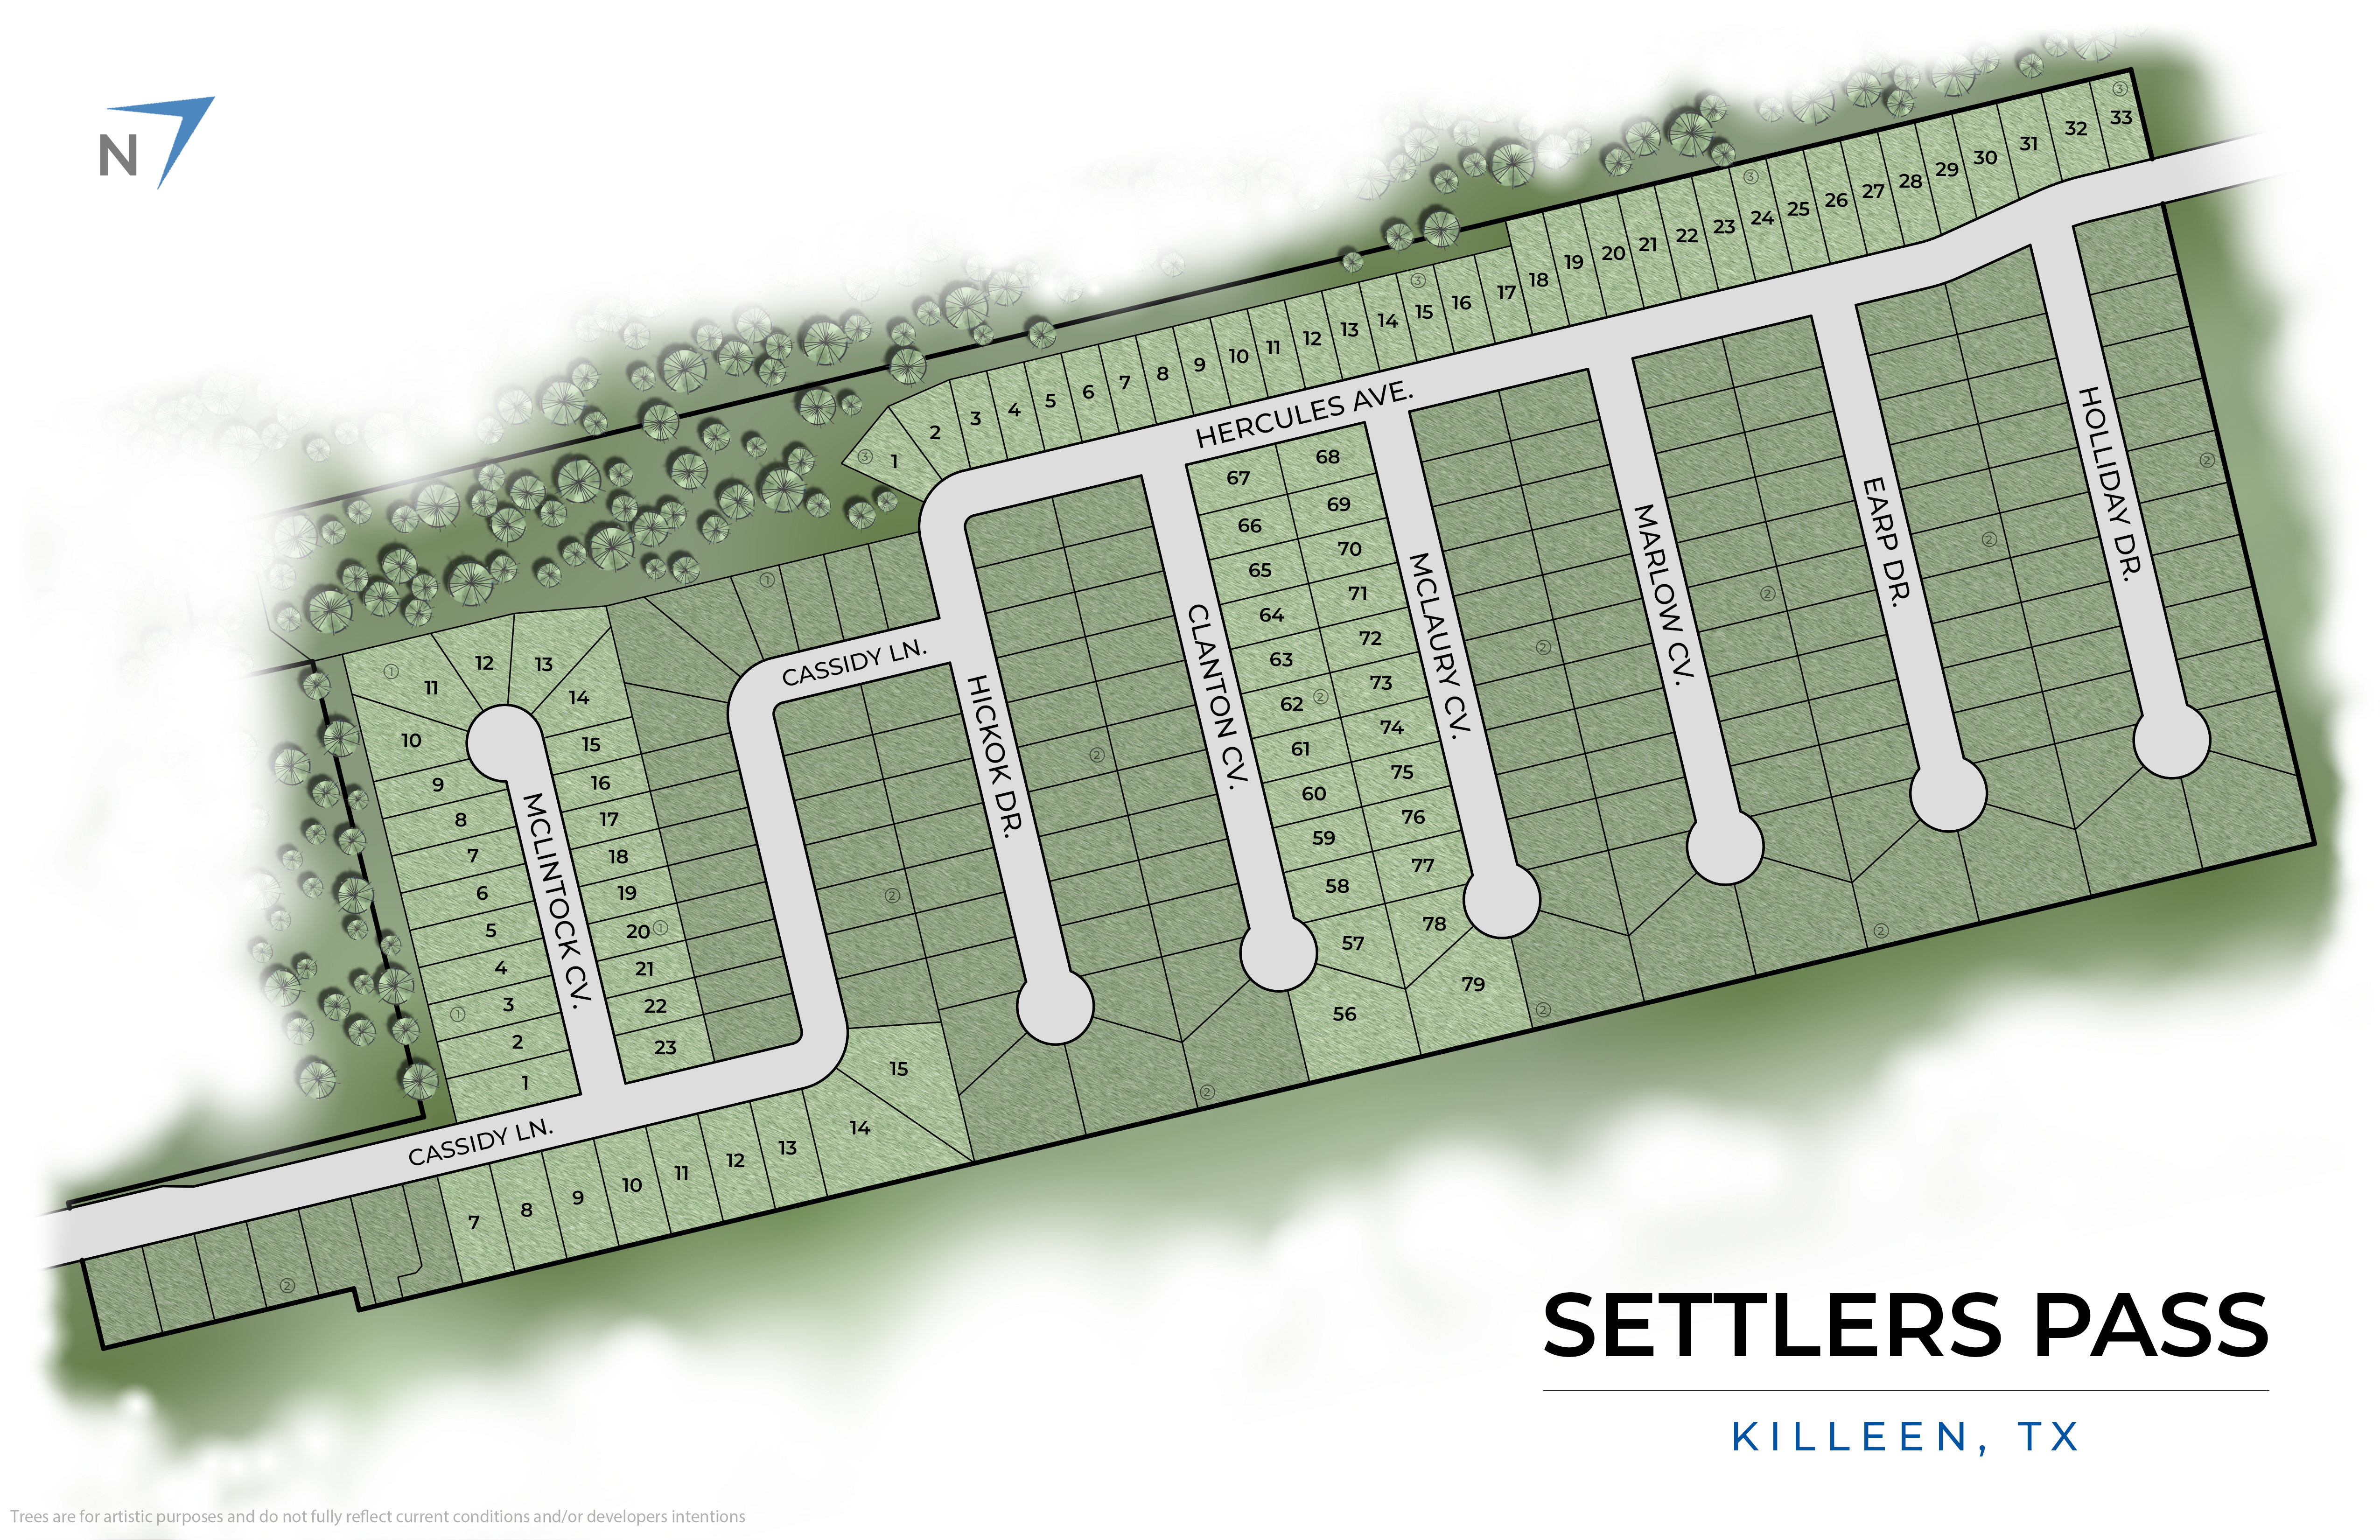 Killeen, TX Settlers Pass New Homes from Stylecraft Builders